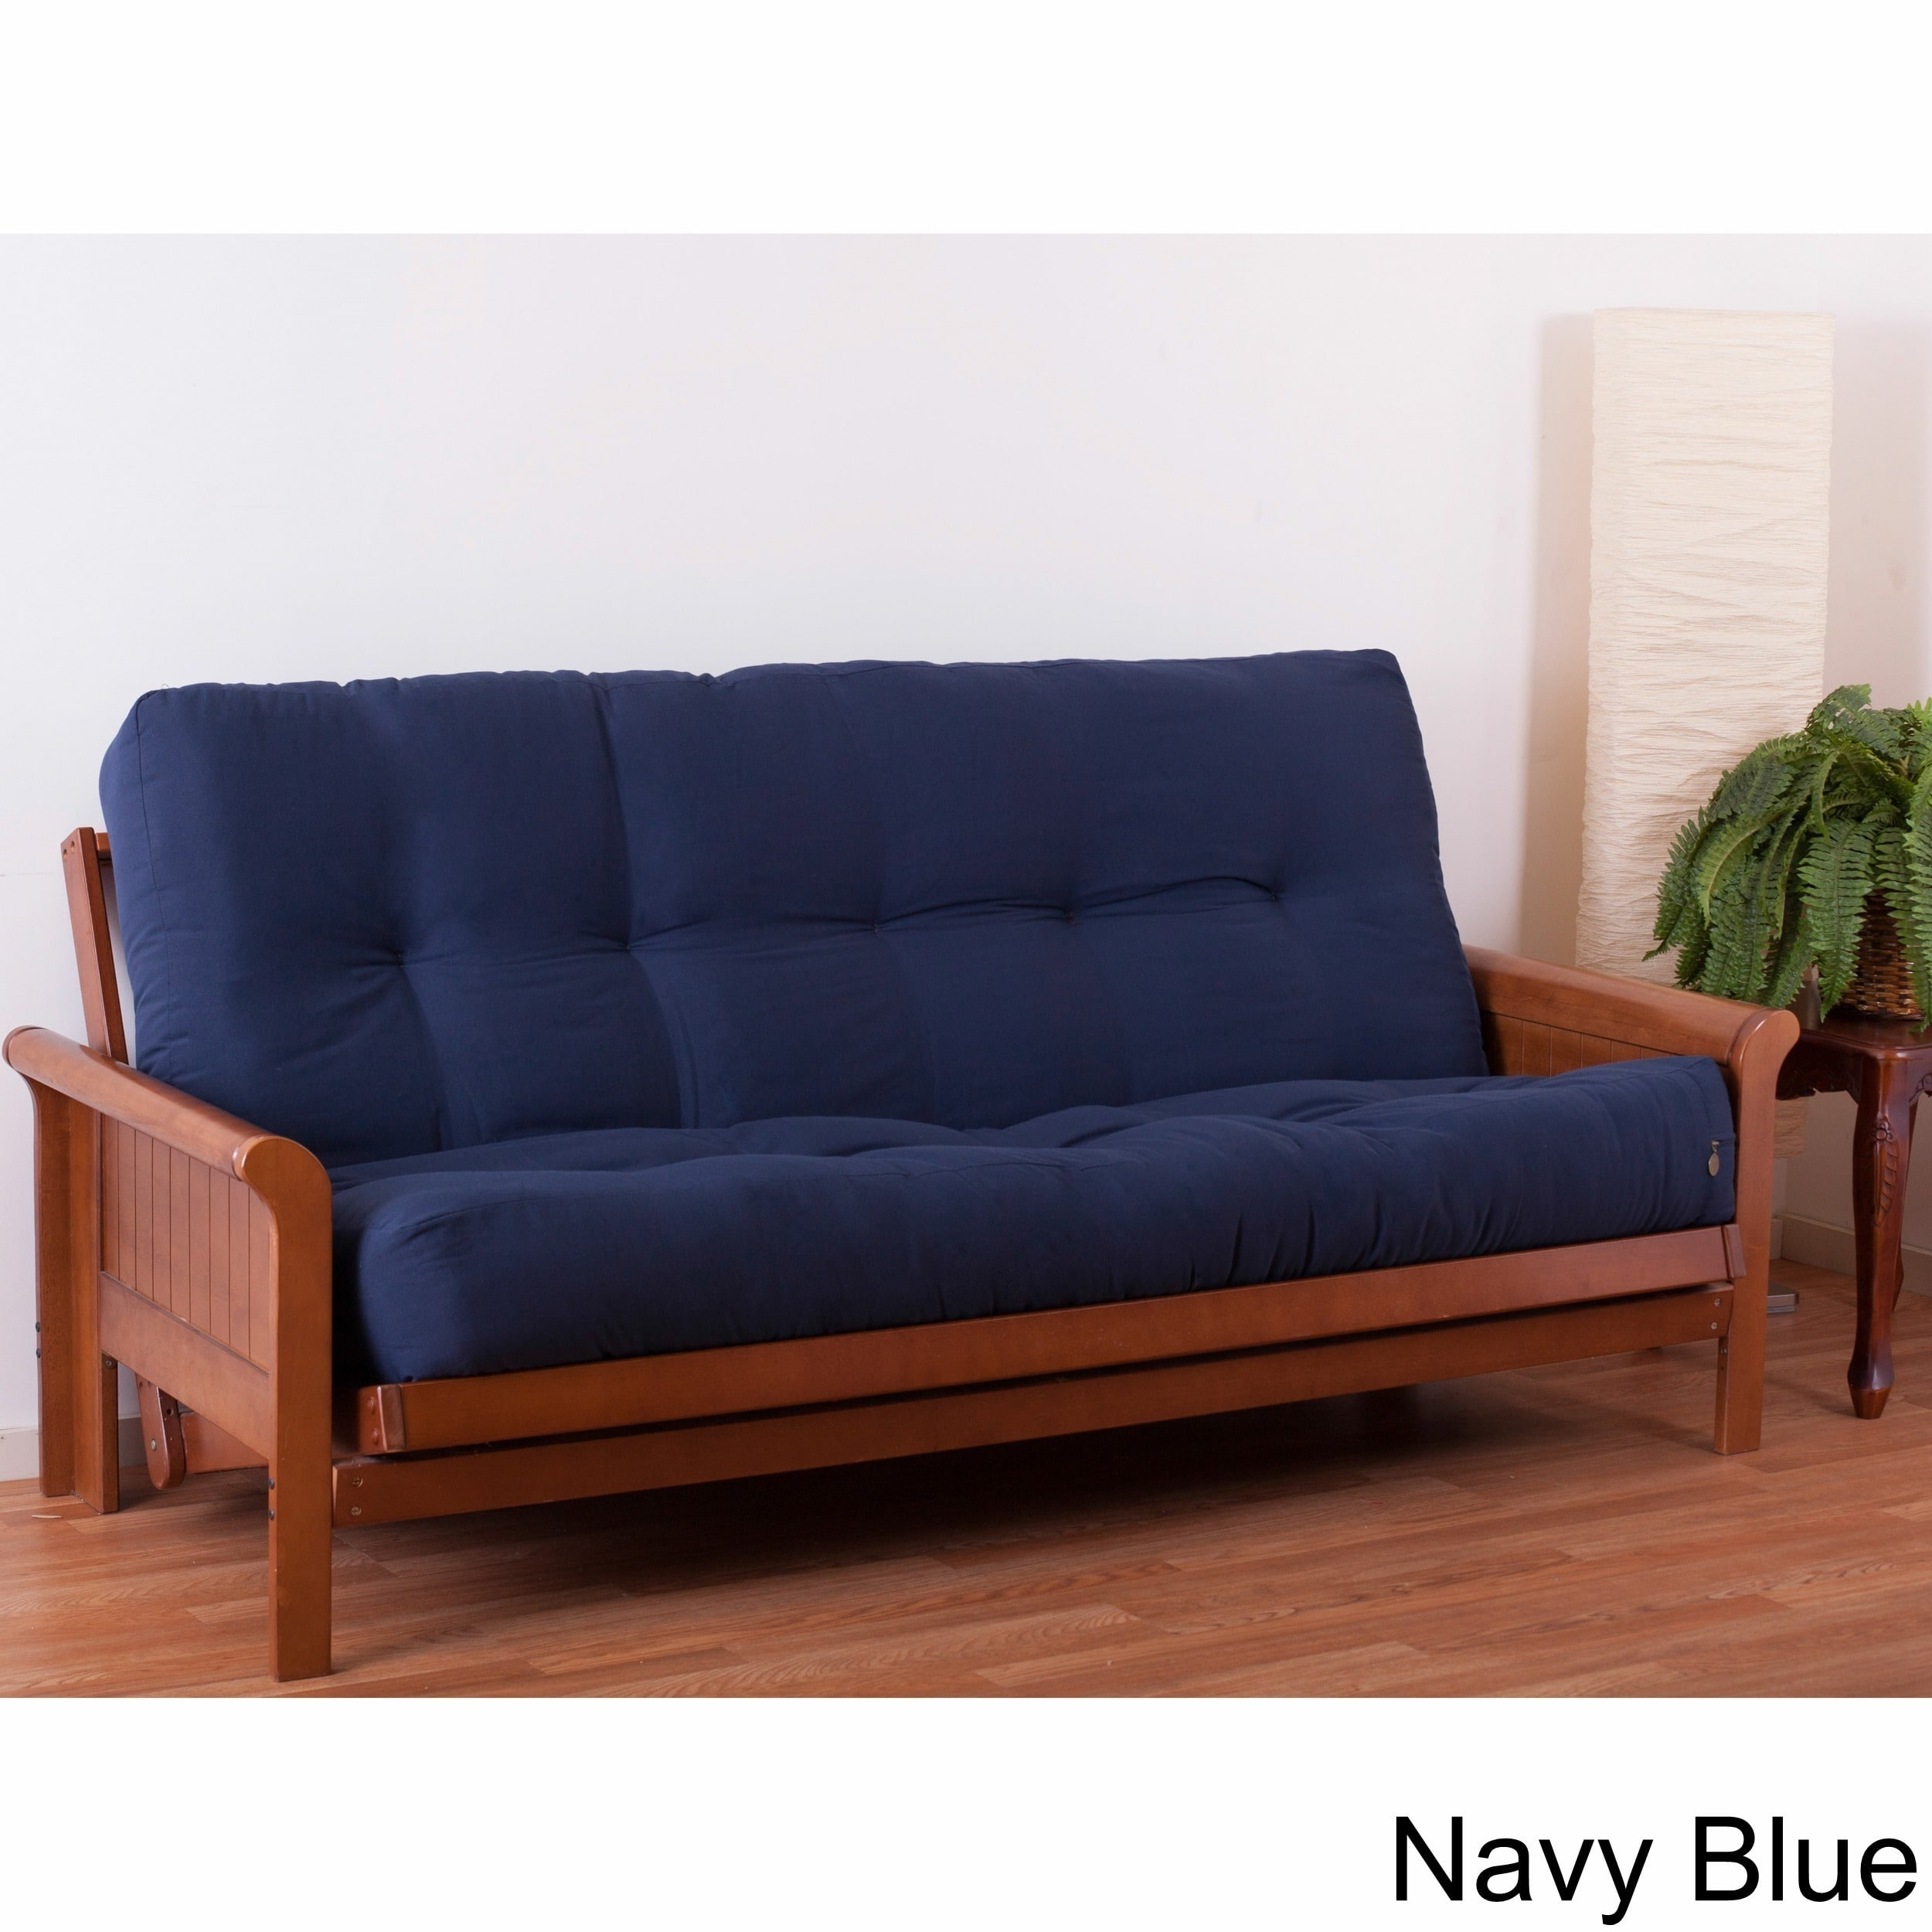 Blazing Needles Full 9 Inch Perfect Pocket Coil Spring Futon Mattress Navy